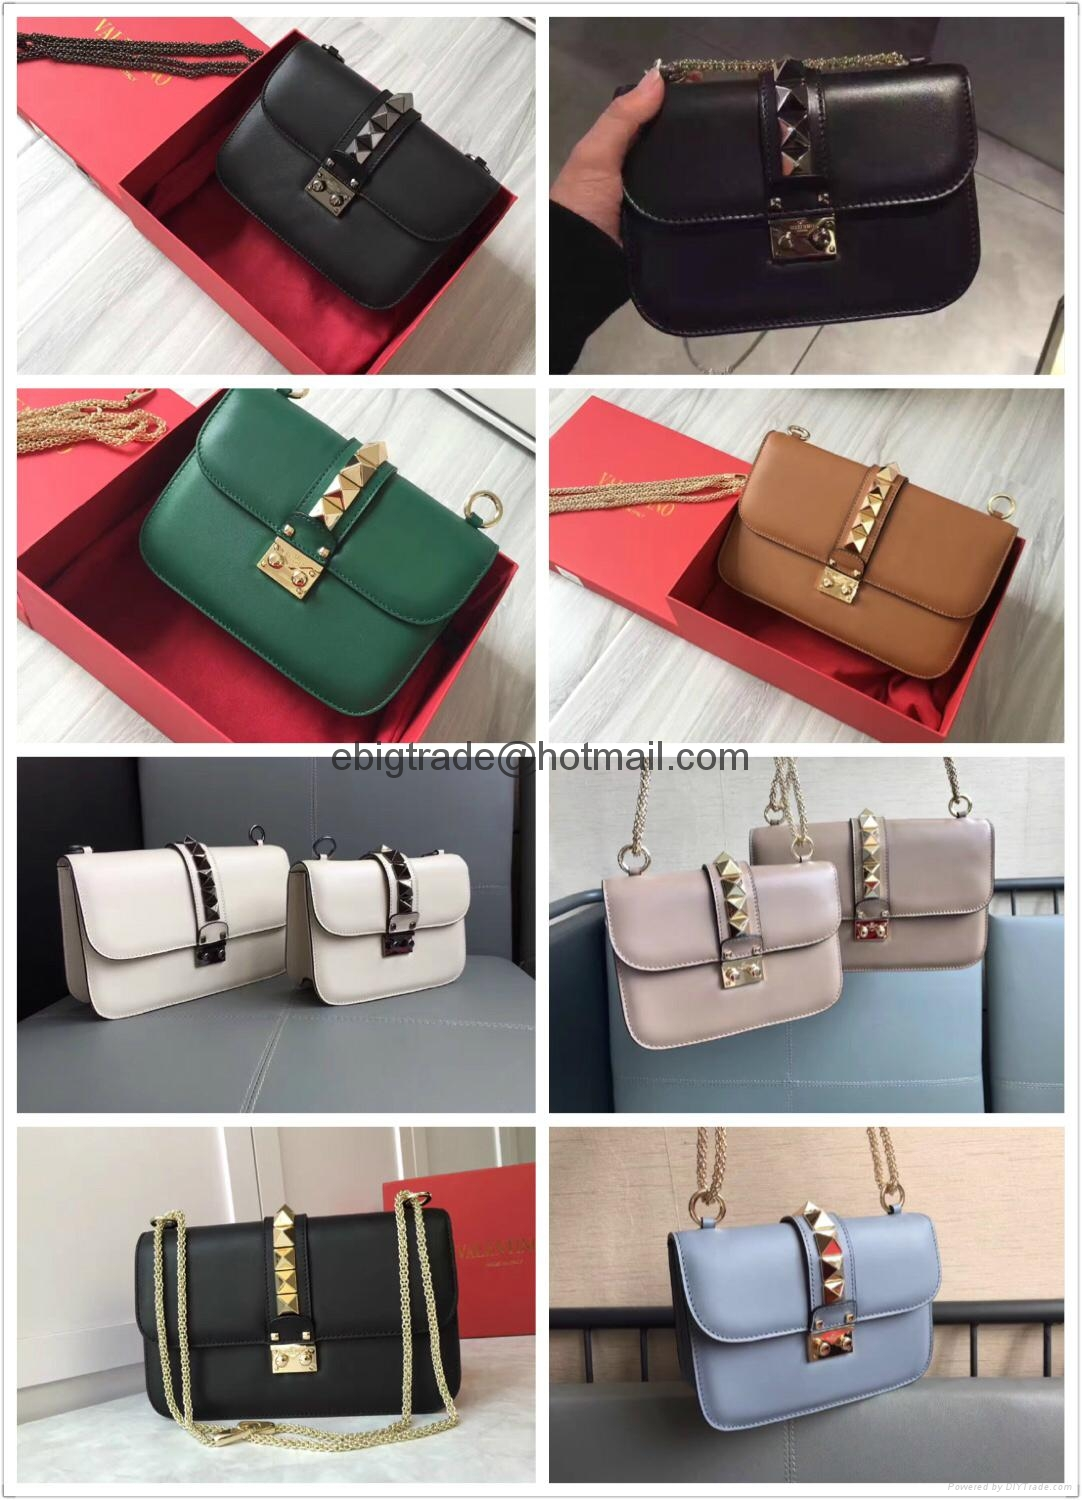 Valentino handbags for sale